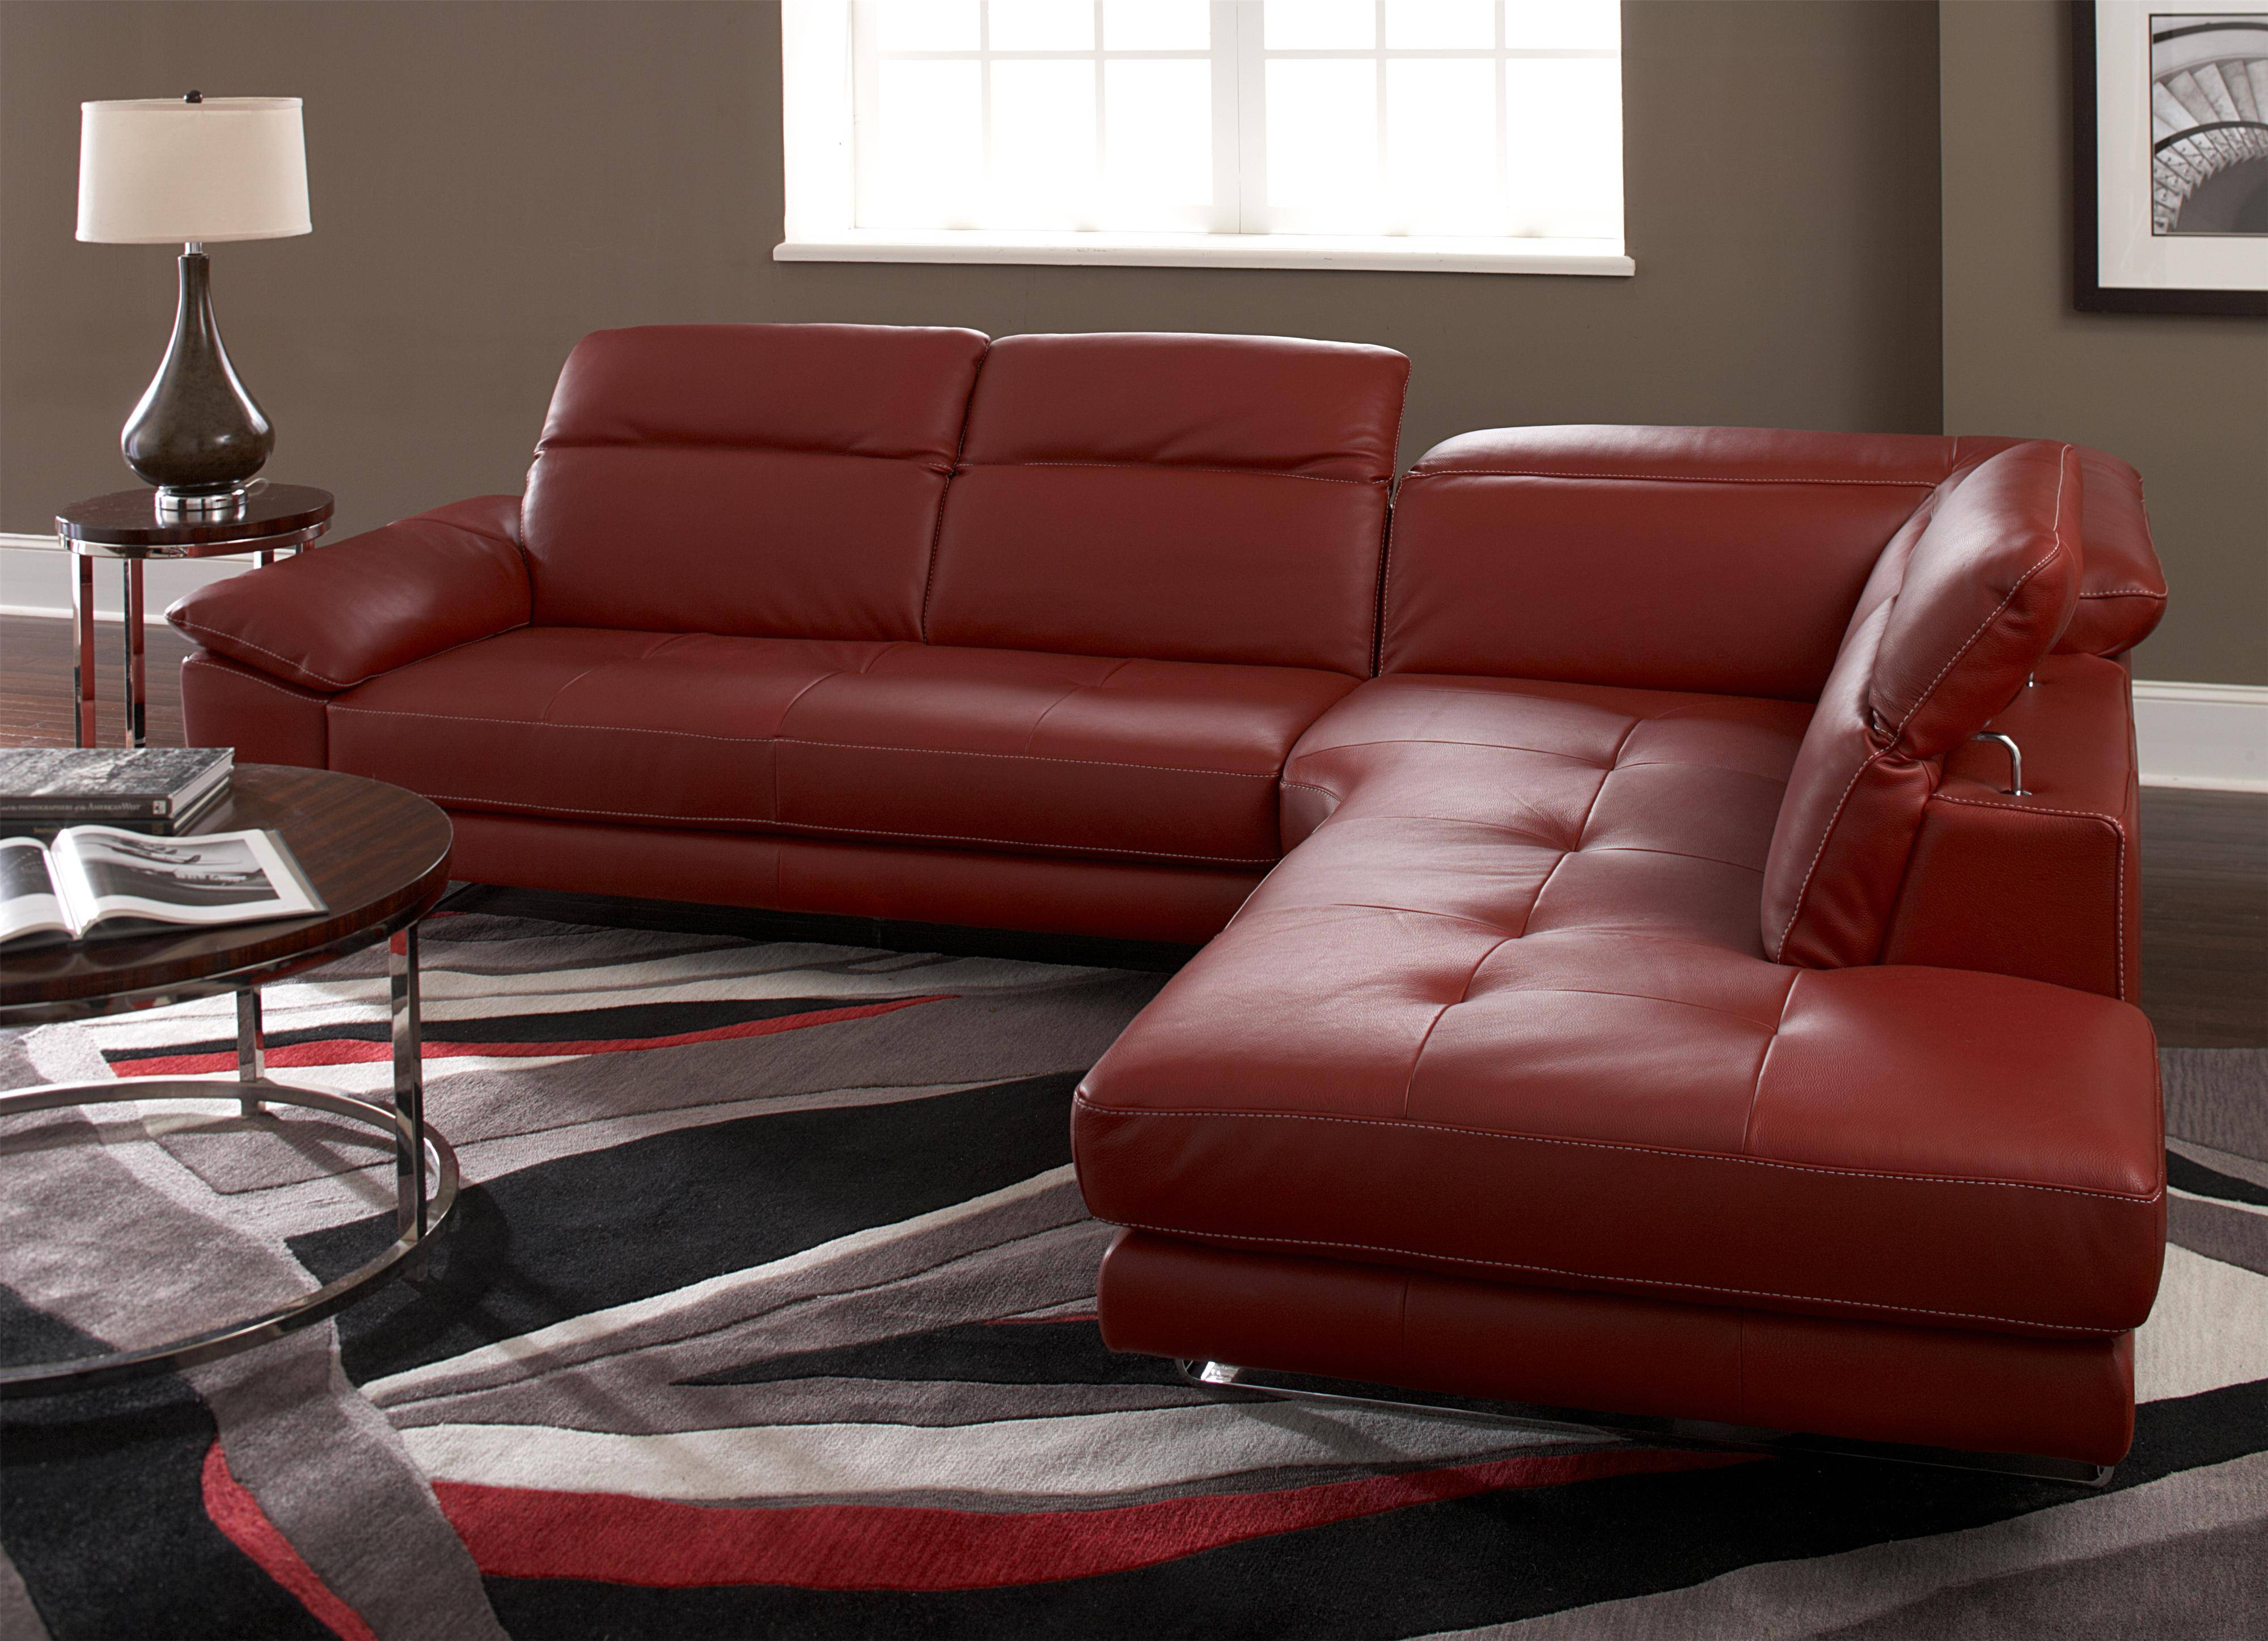 Furniture: Elegant Natuzzi Leather Couch For Living Room Furniture with Natuzzi Sleeper Sofas (Image 5 of 15)